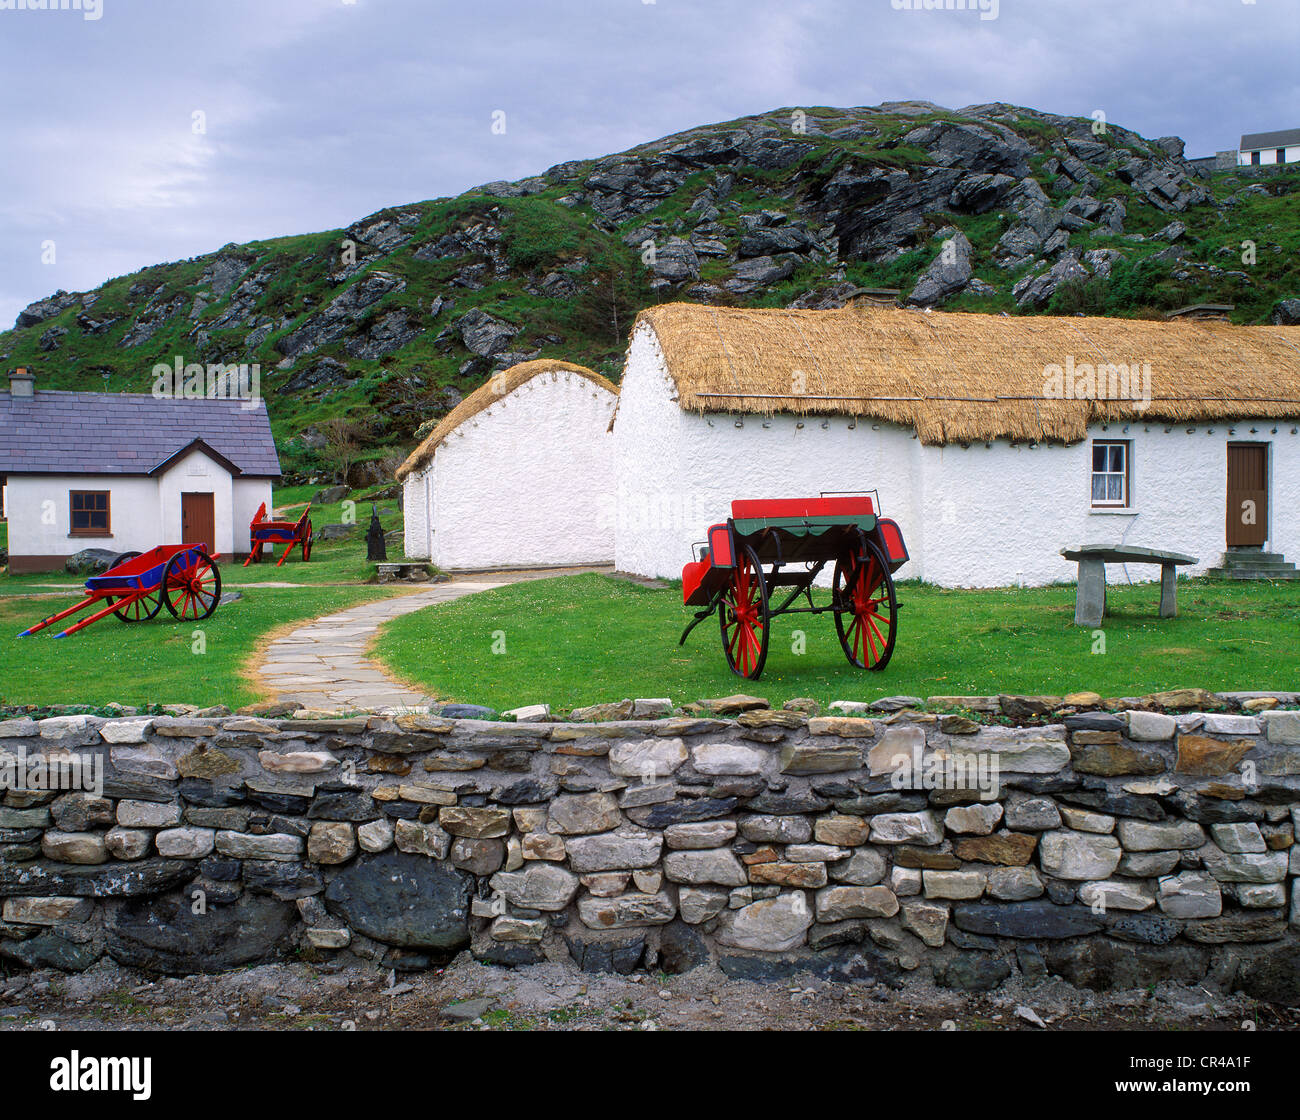 Museum of Folk Culture, Glencolumbkille, County Donegal, Republic of Ireland, Europ - Stock Image